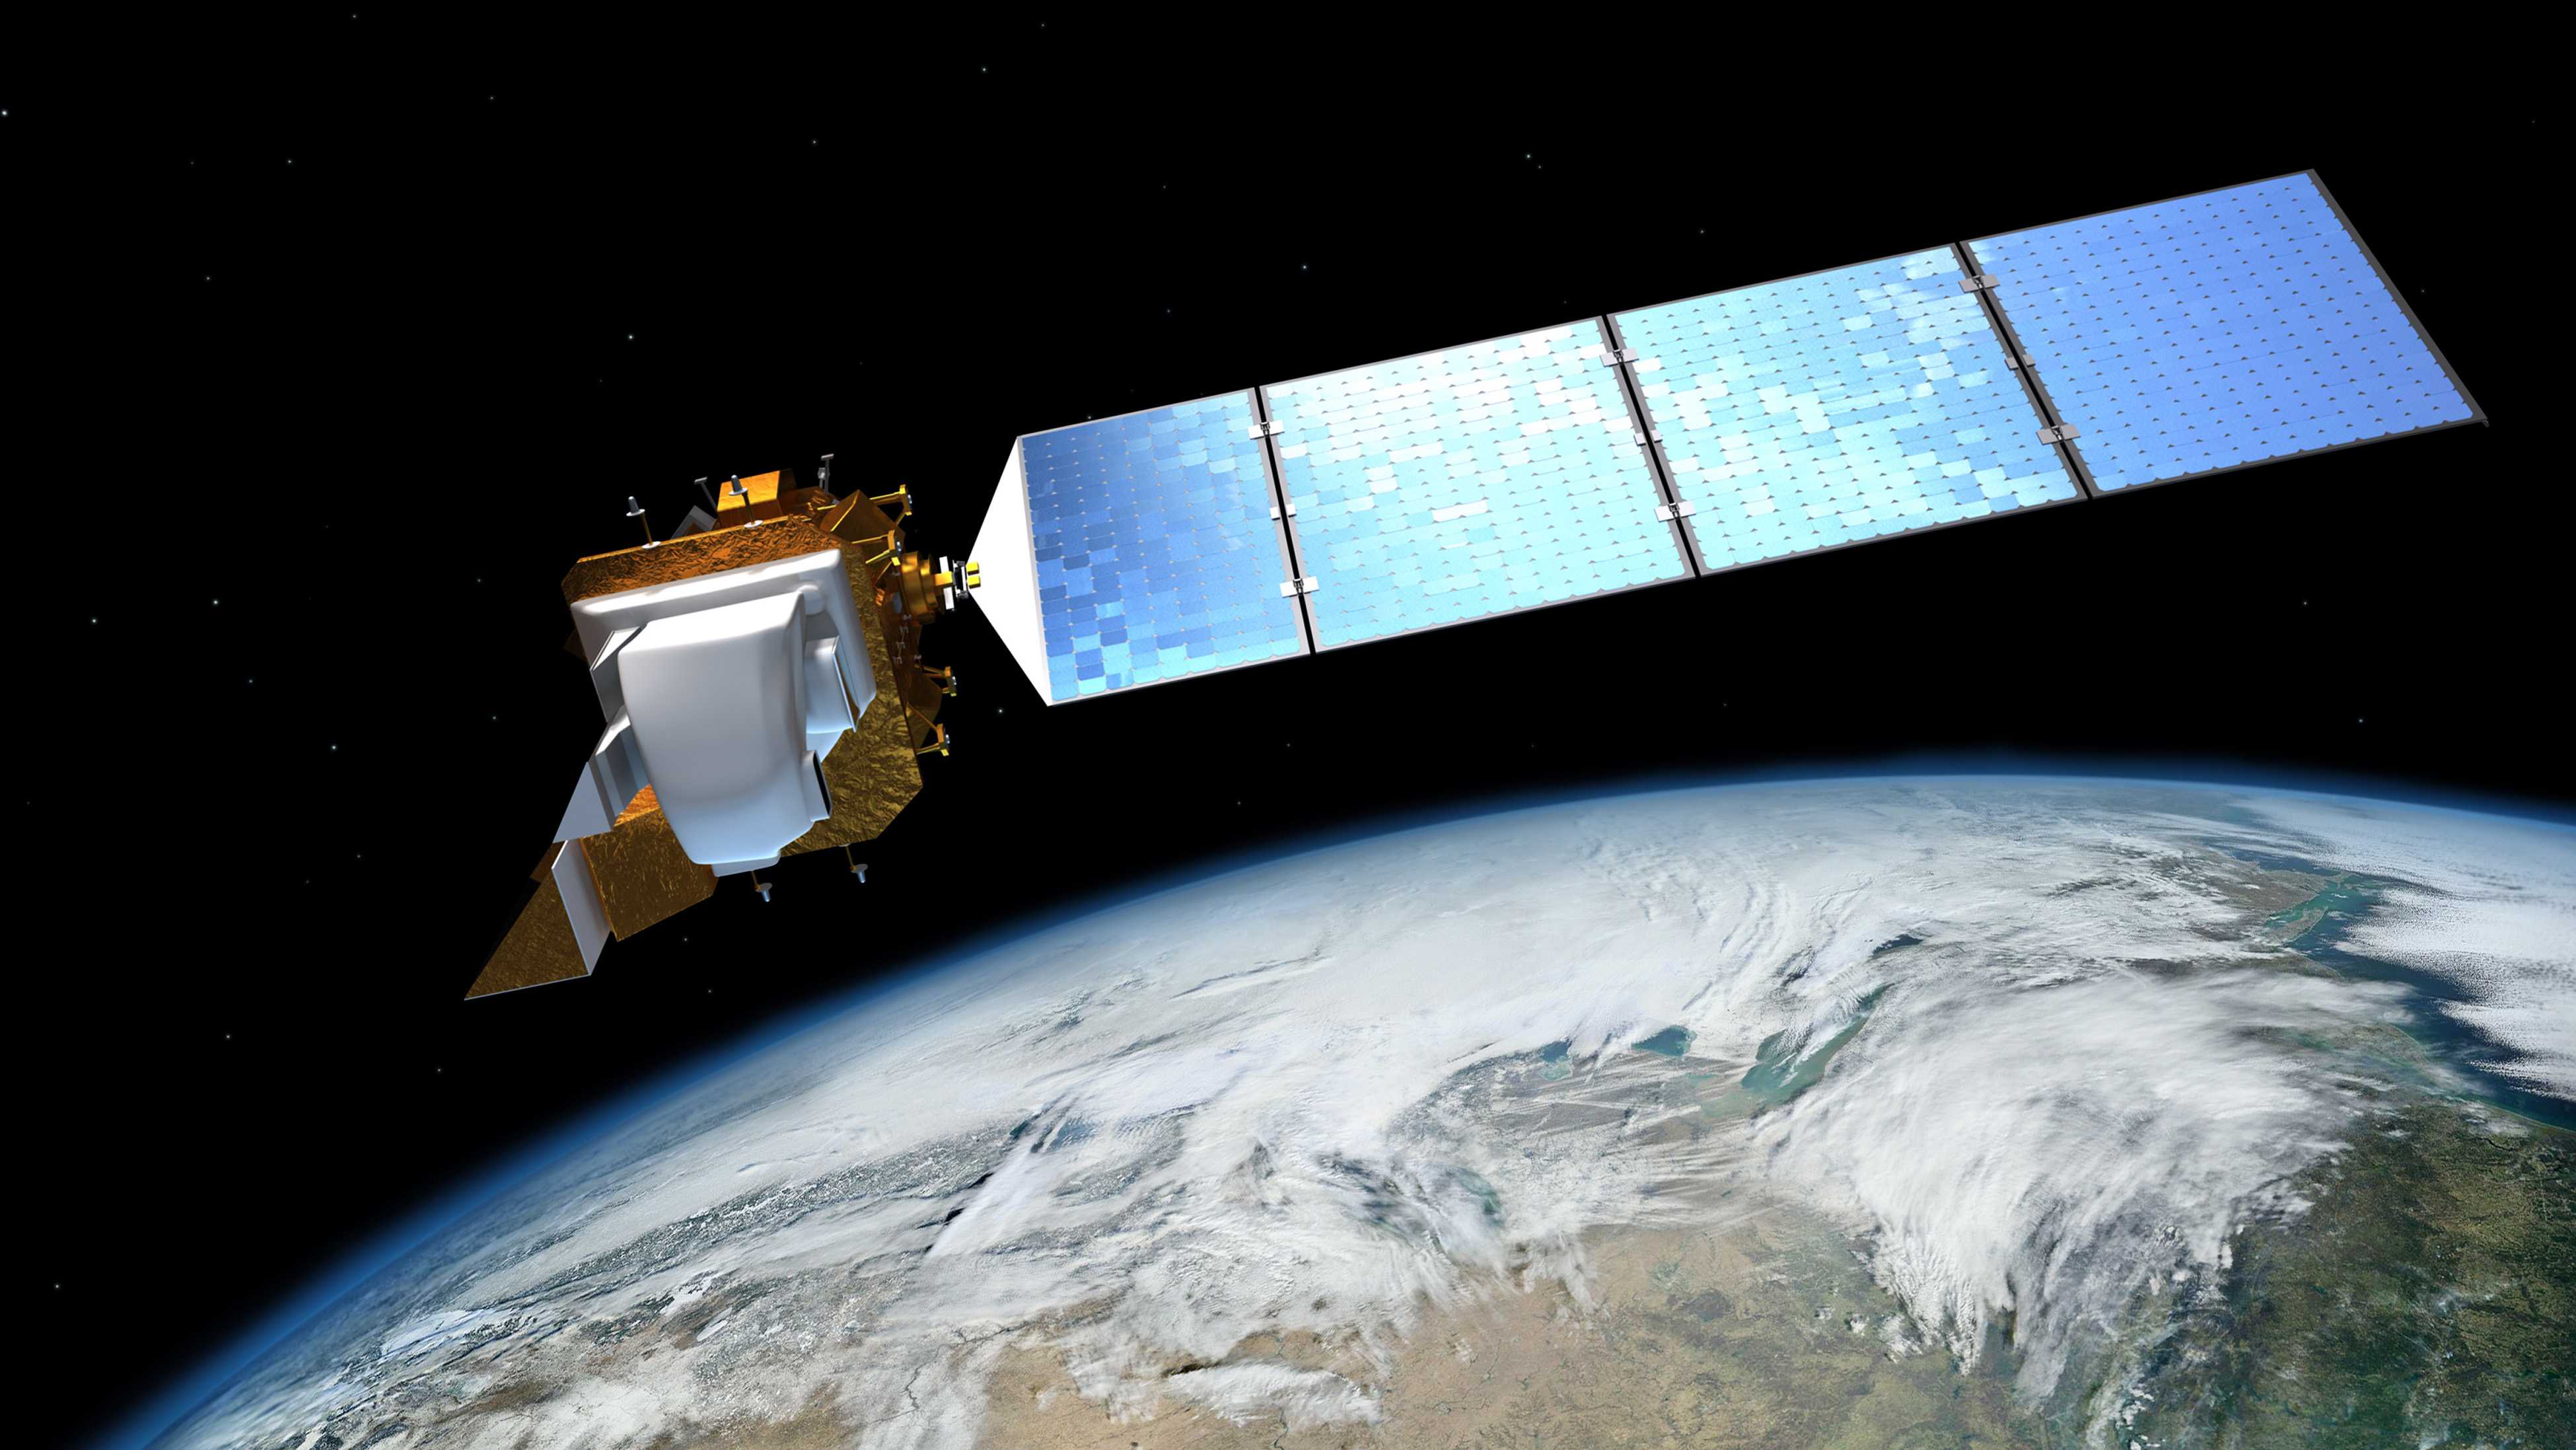 Landsat 8, an Earth Observation satellite operated by NASA